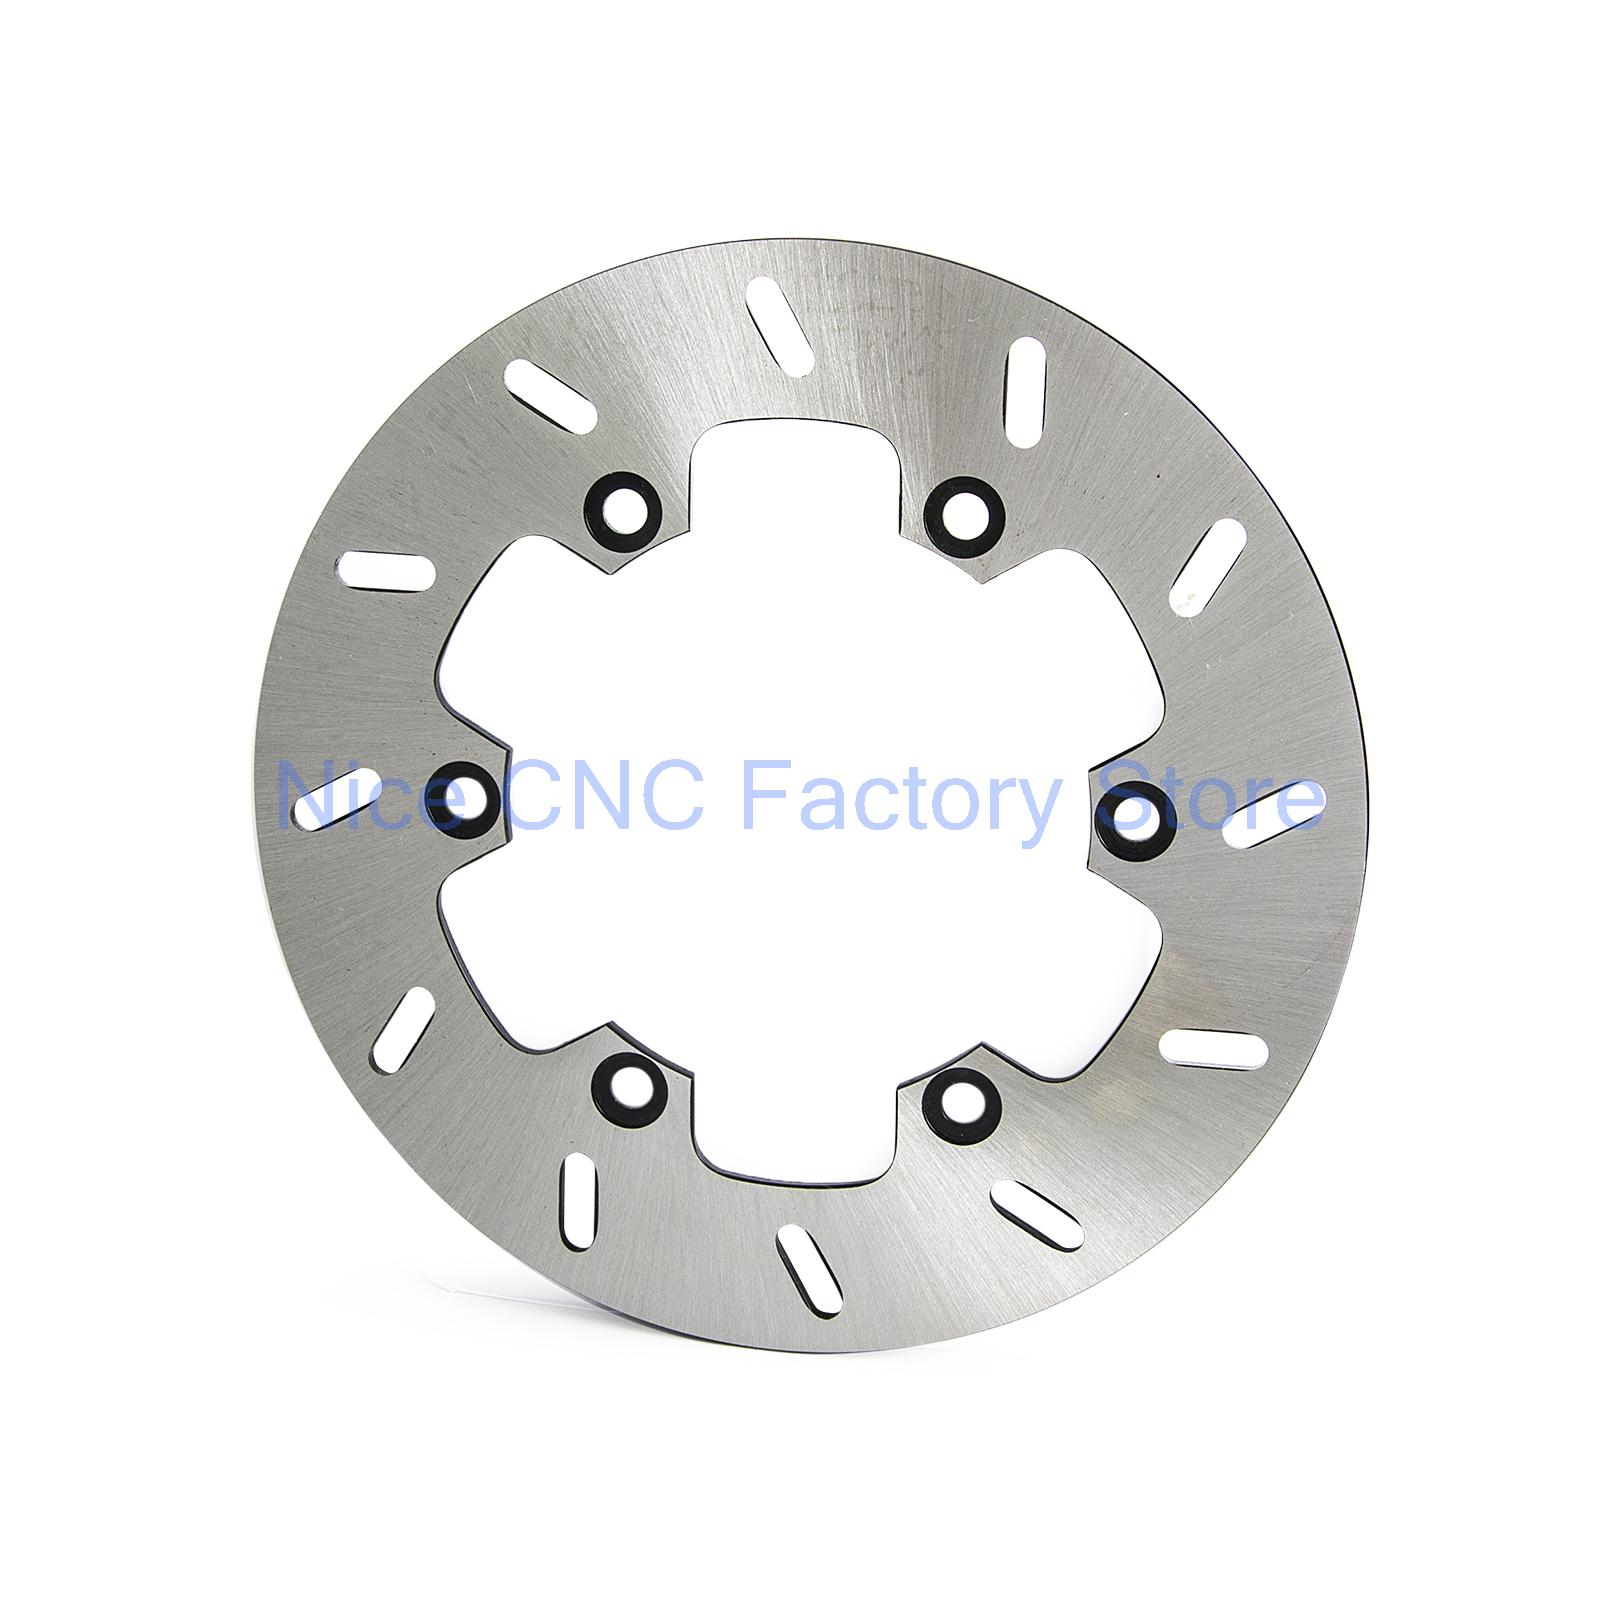 New Motorcycle Front Rotor Brake Disc For Yamaha TT250R 4MR2 4GY 1993-1997 TT250 R 1999-2004 TTR250 TT-R250 1999-2007 mr northjoe front